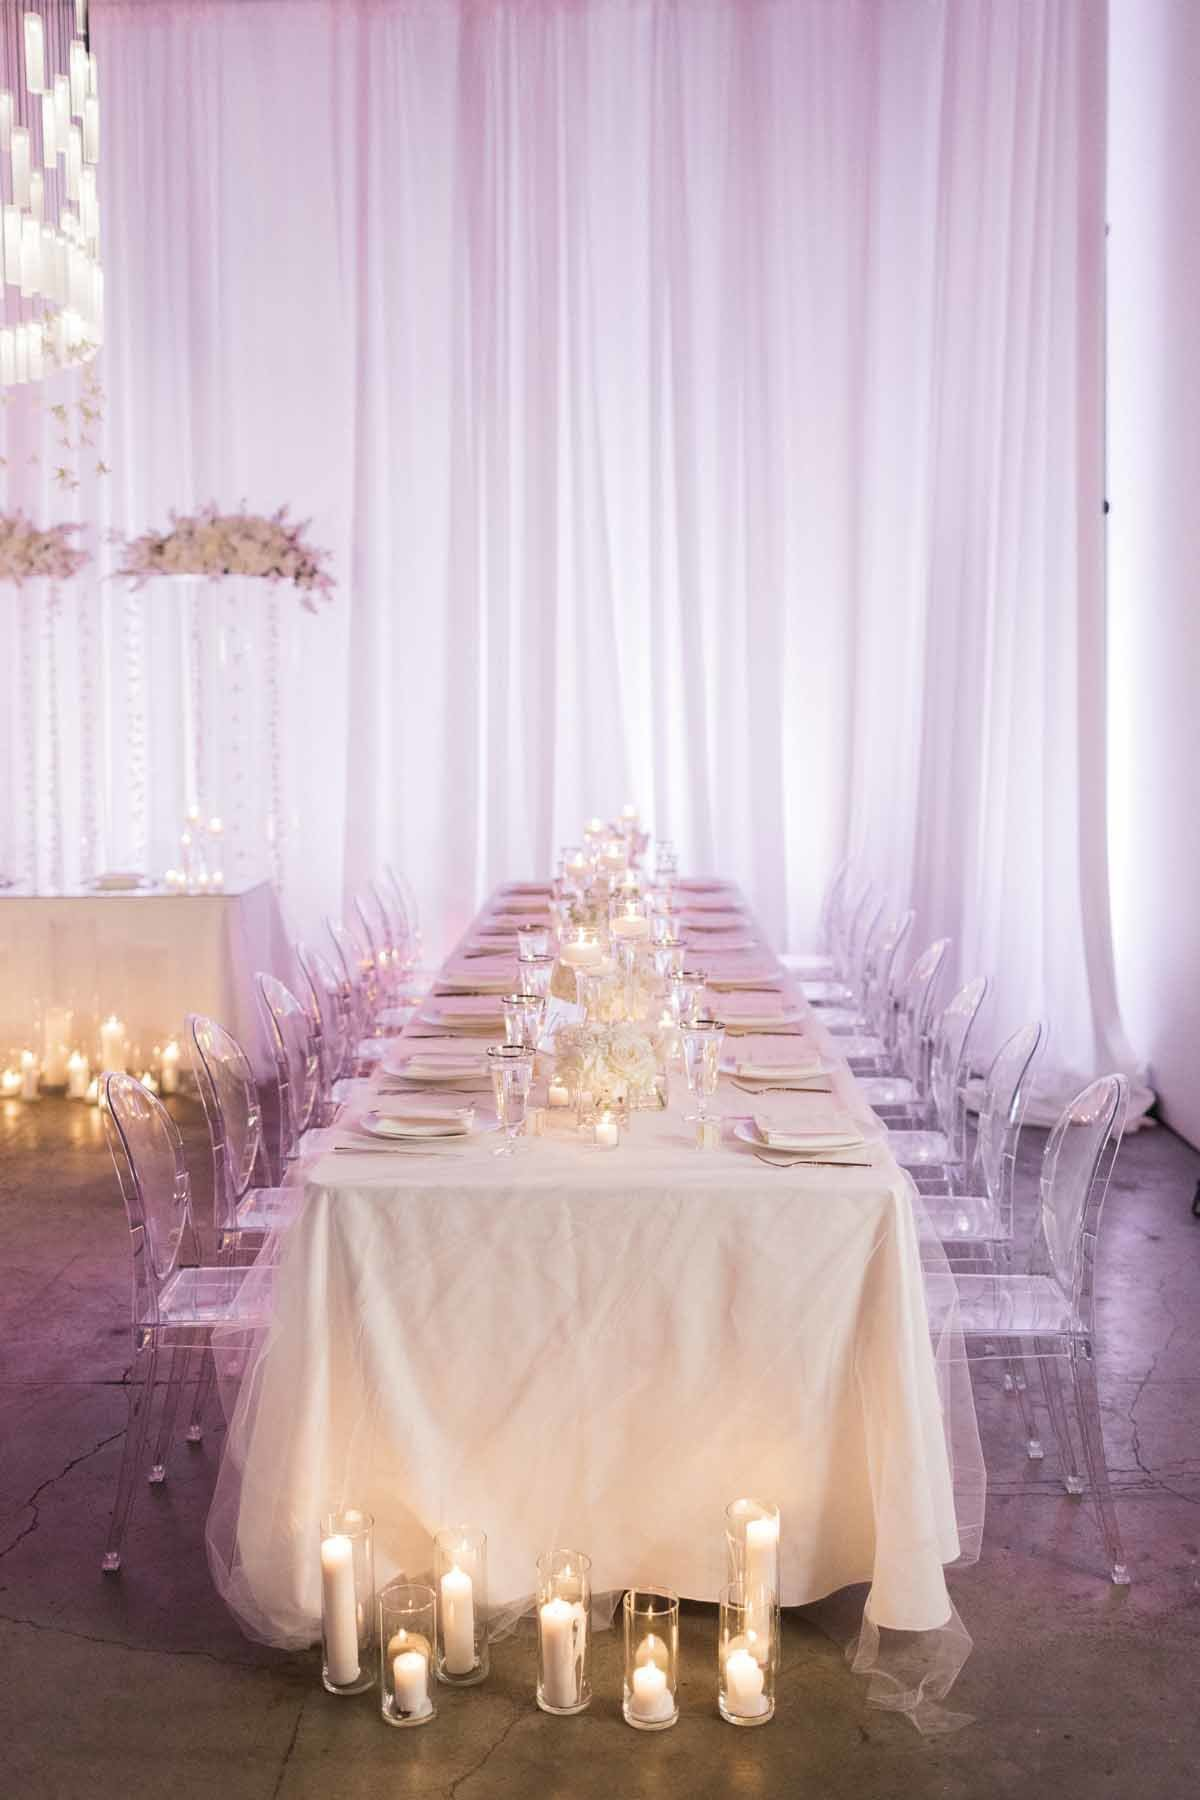 These beautiful long white tables with ghost chairs designed by Flora Nova Design make for a stunning wedding reception.